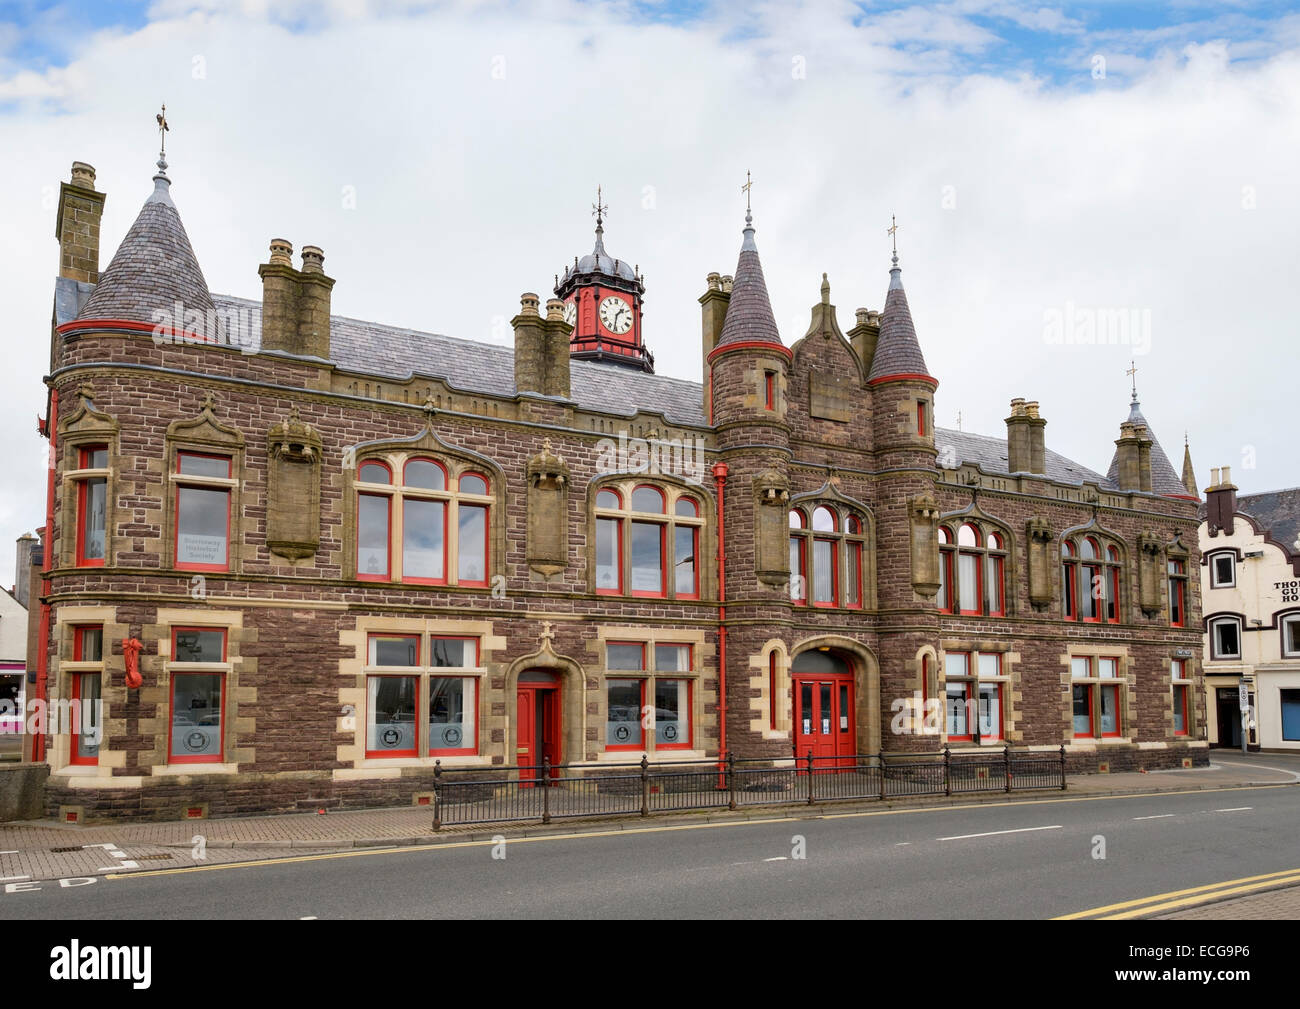 Old Town Hall building with clock in Stornoway, Isle of Lewis, Outer Hebrides, Western Isles, Scotland, UK, Britain - Stock Image